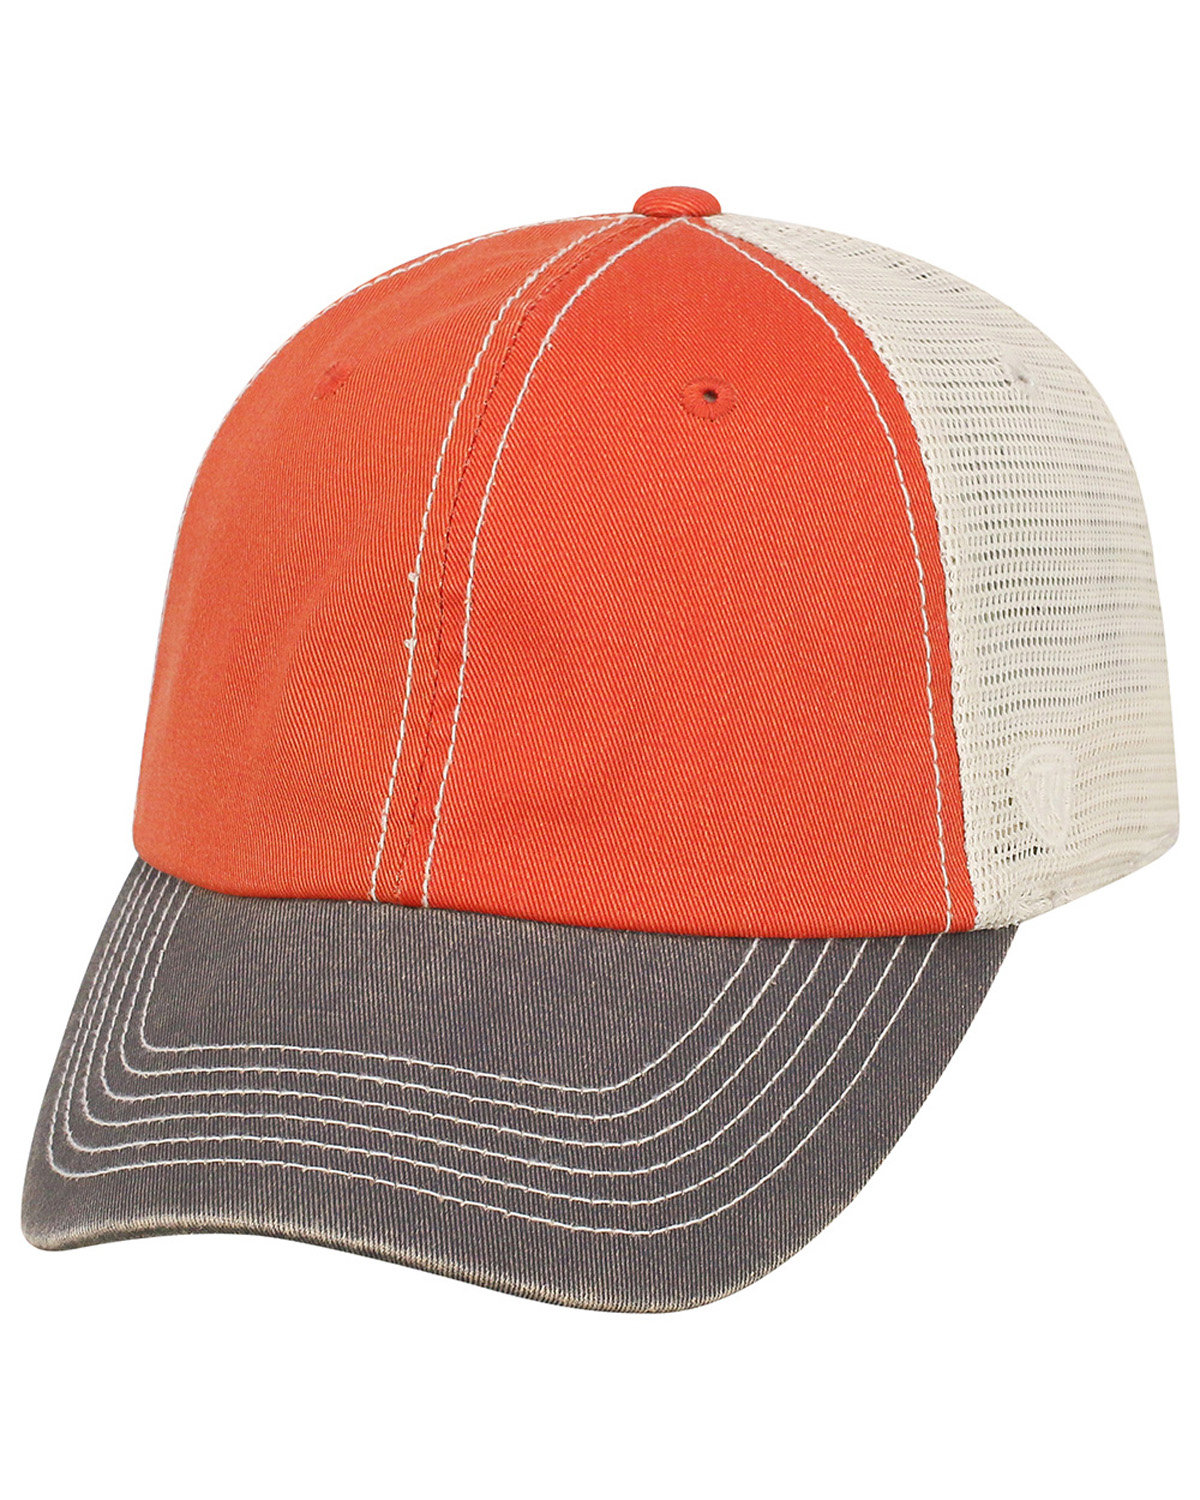 Top Of The World Adult Offroad Cap ORANGE